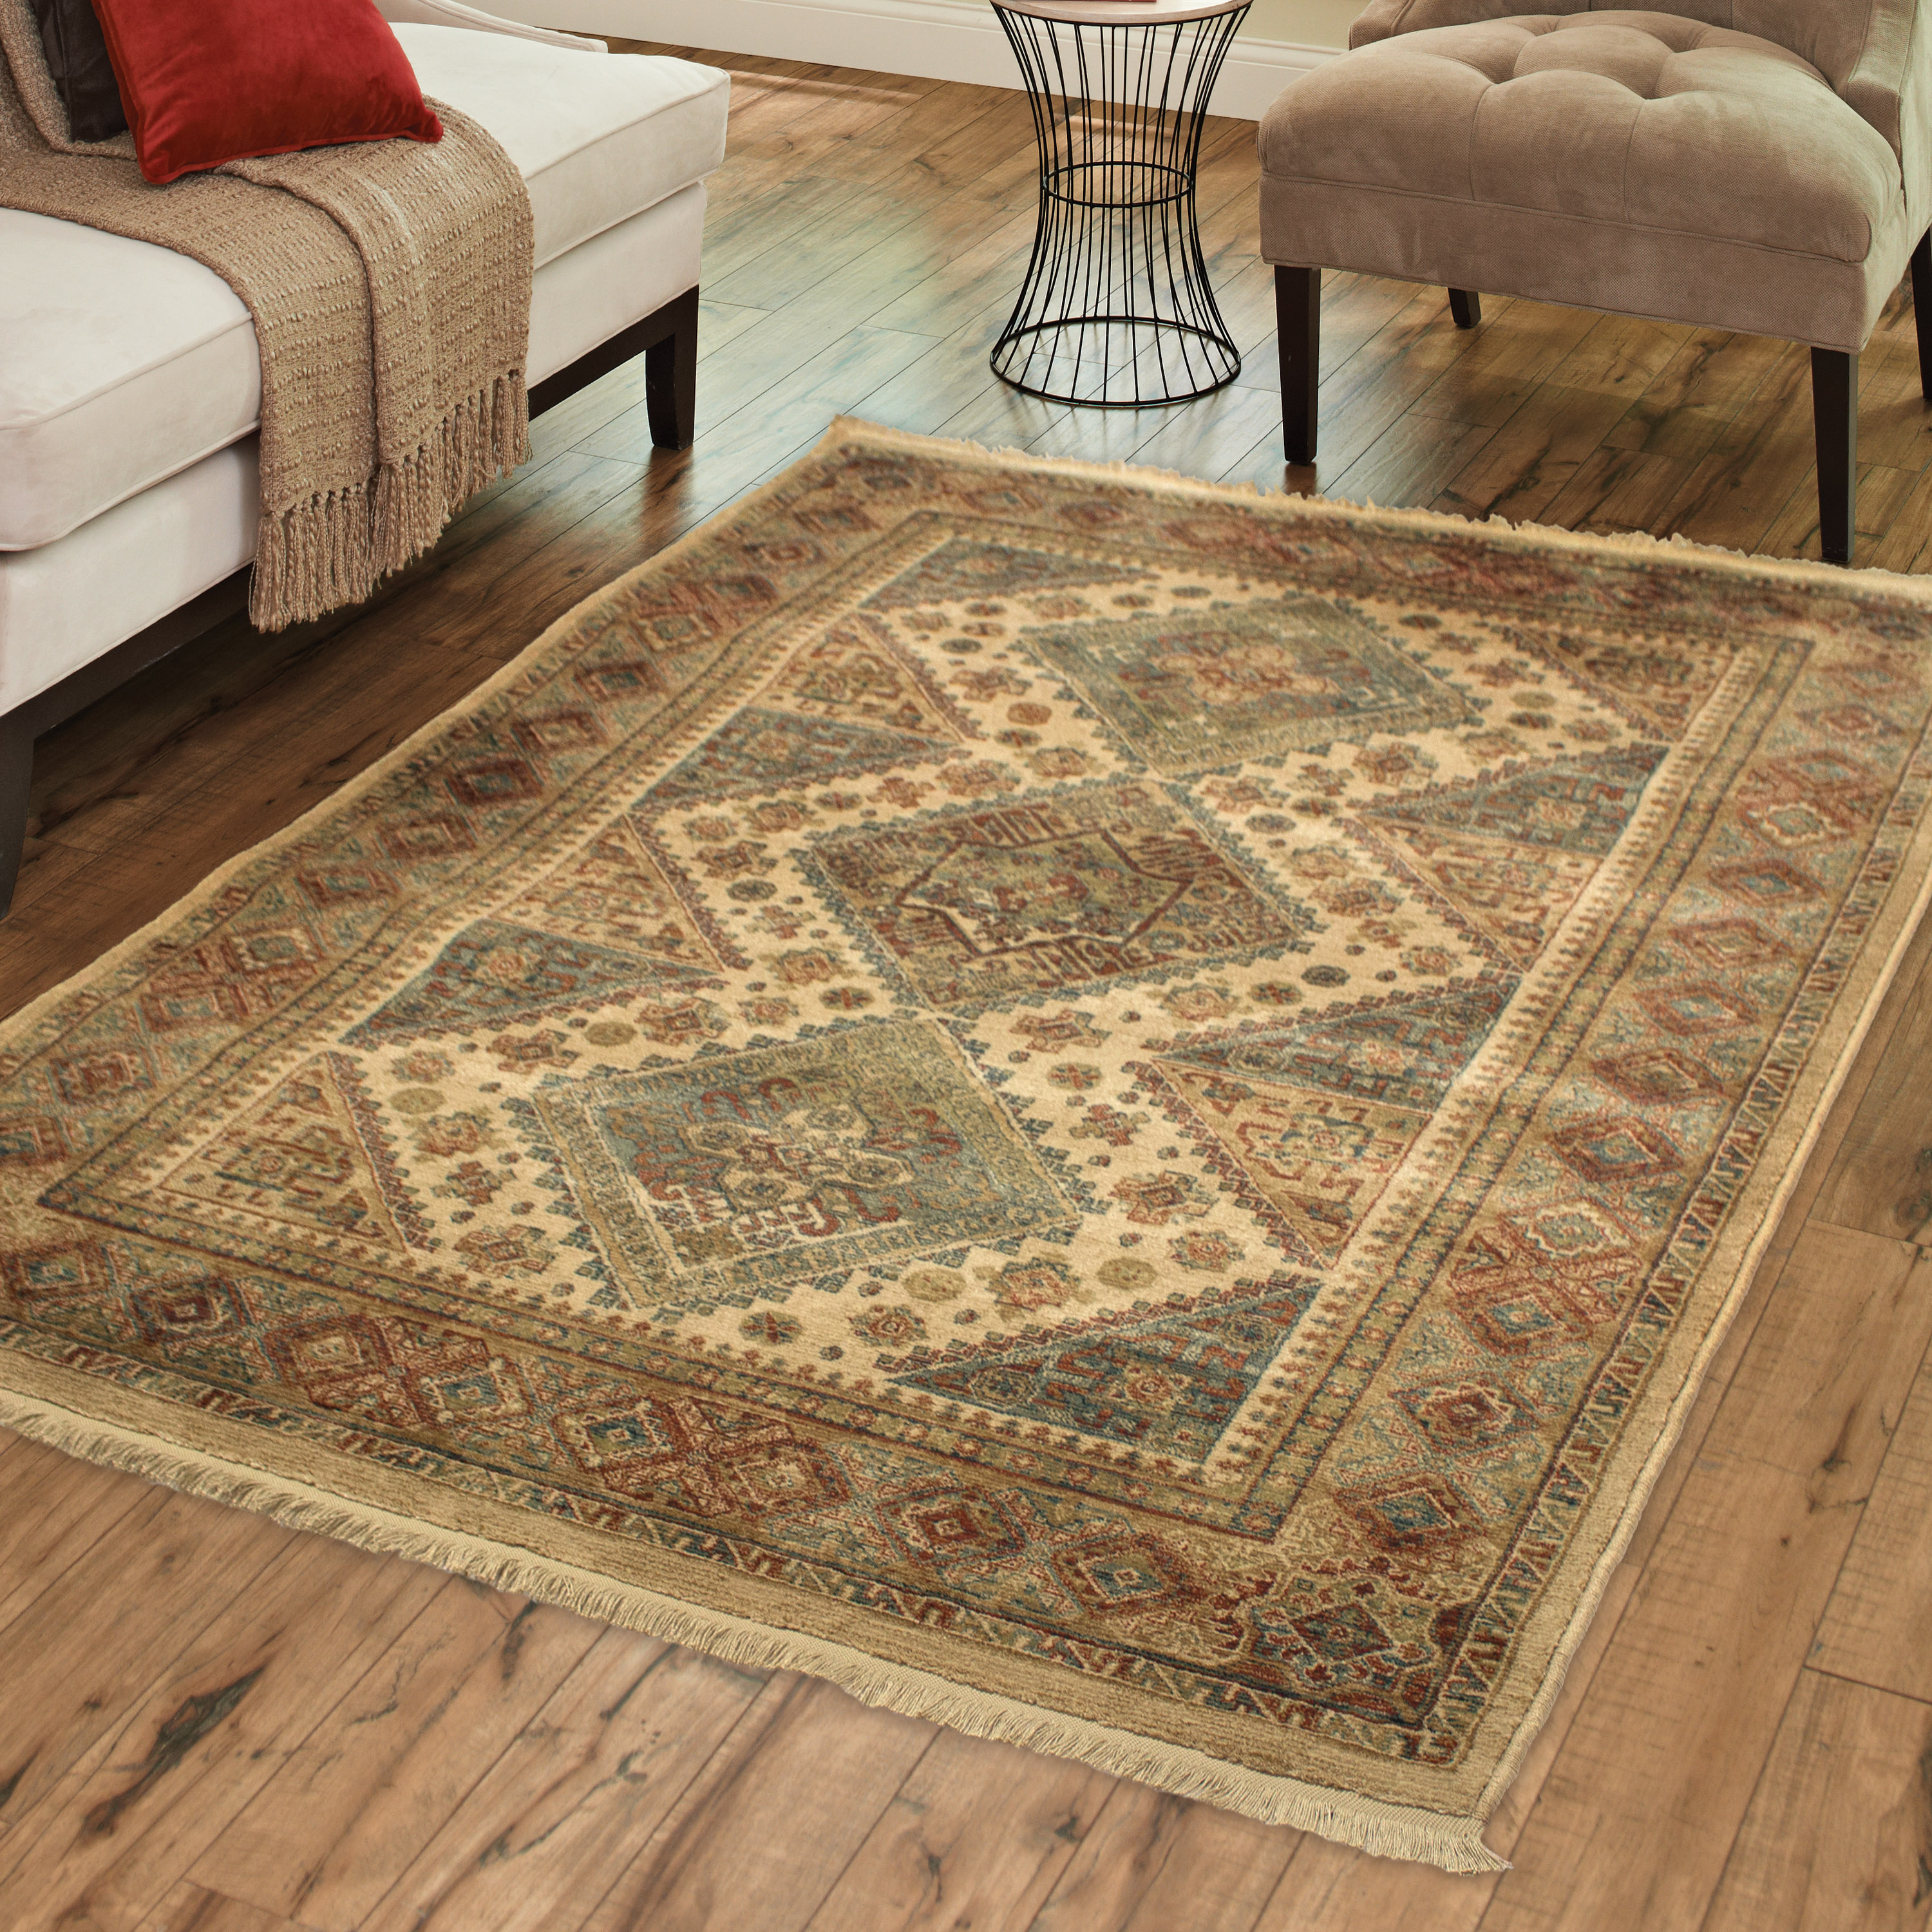 Floor rug and their designs and uses